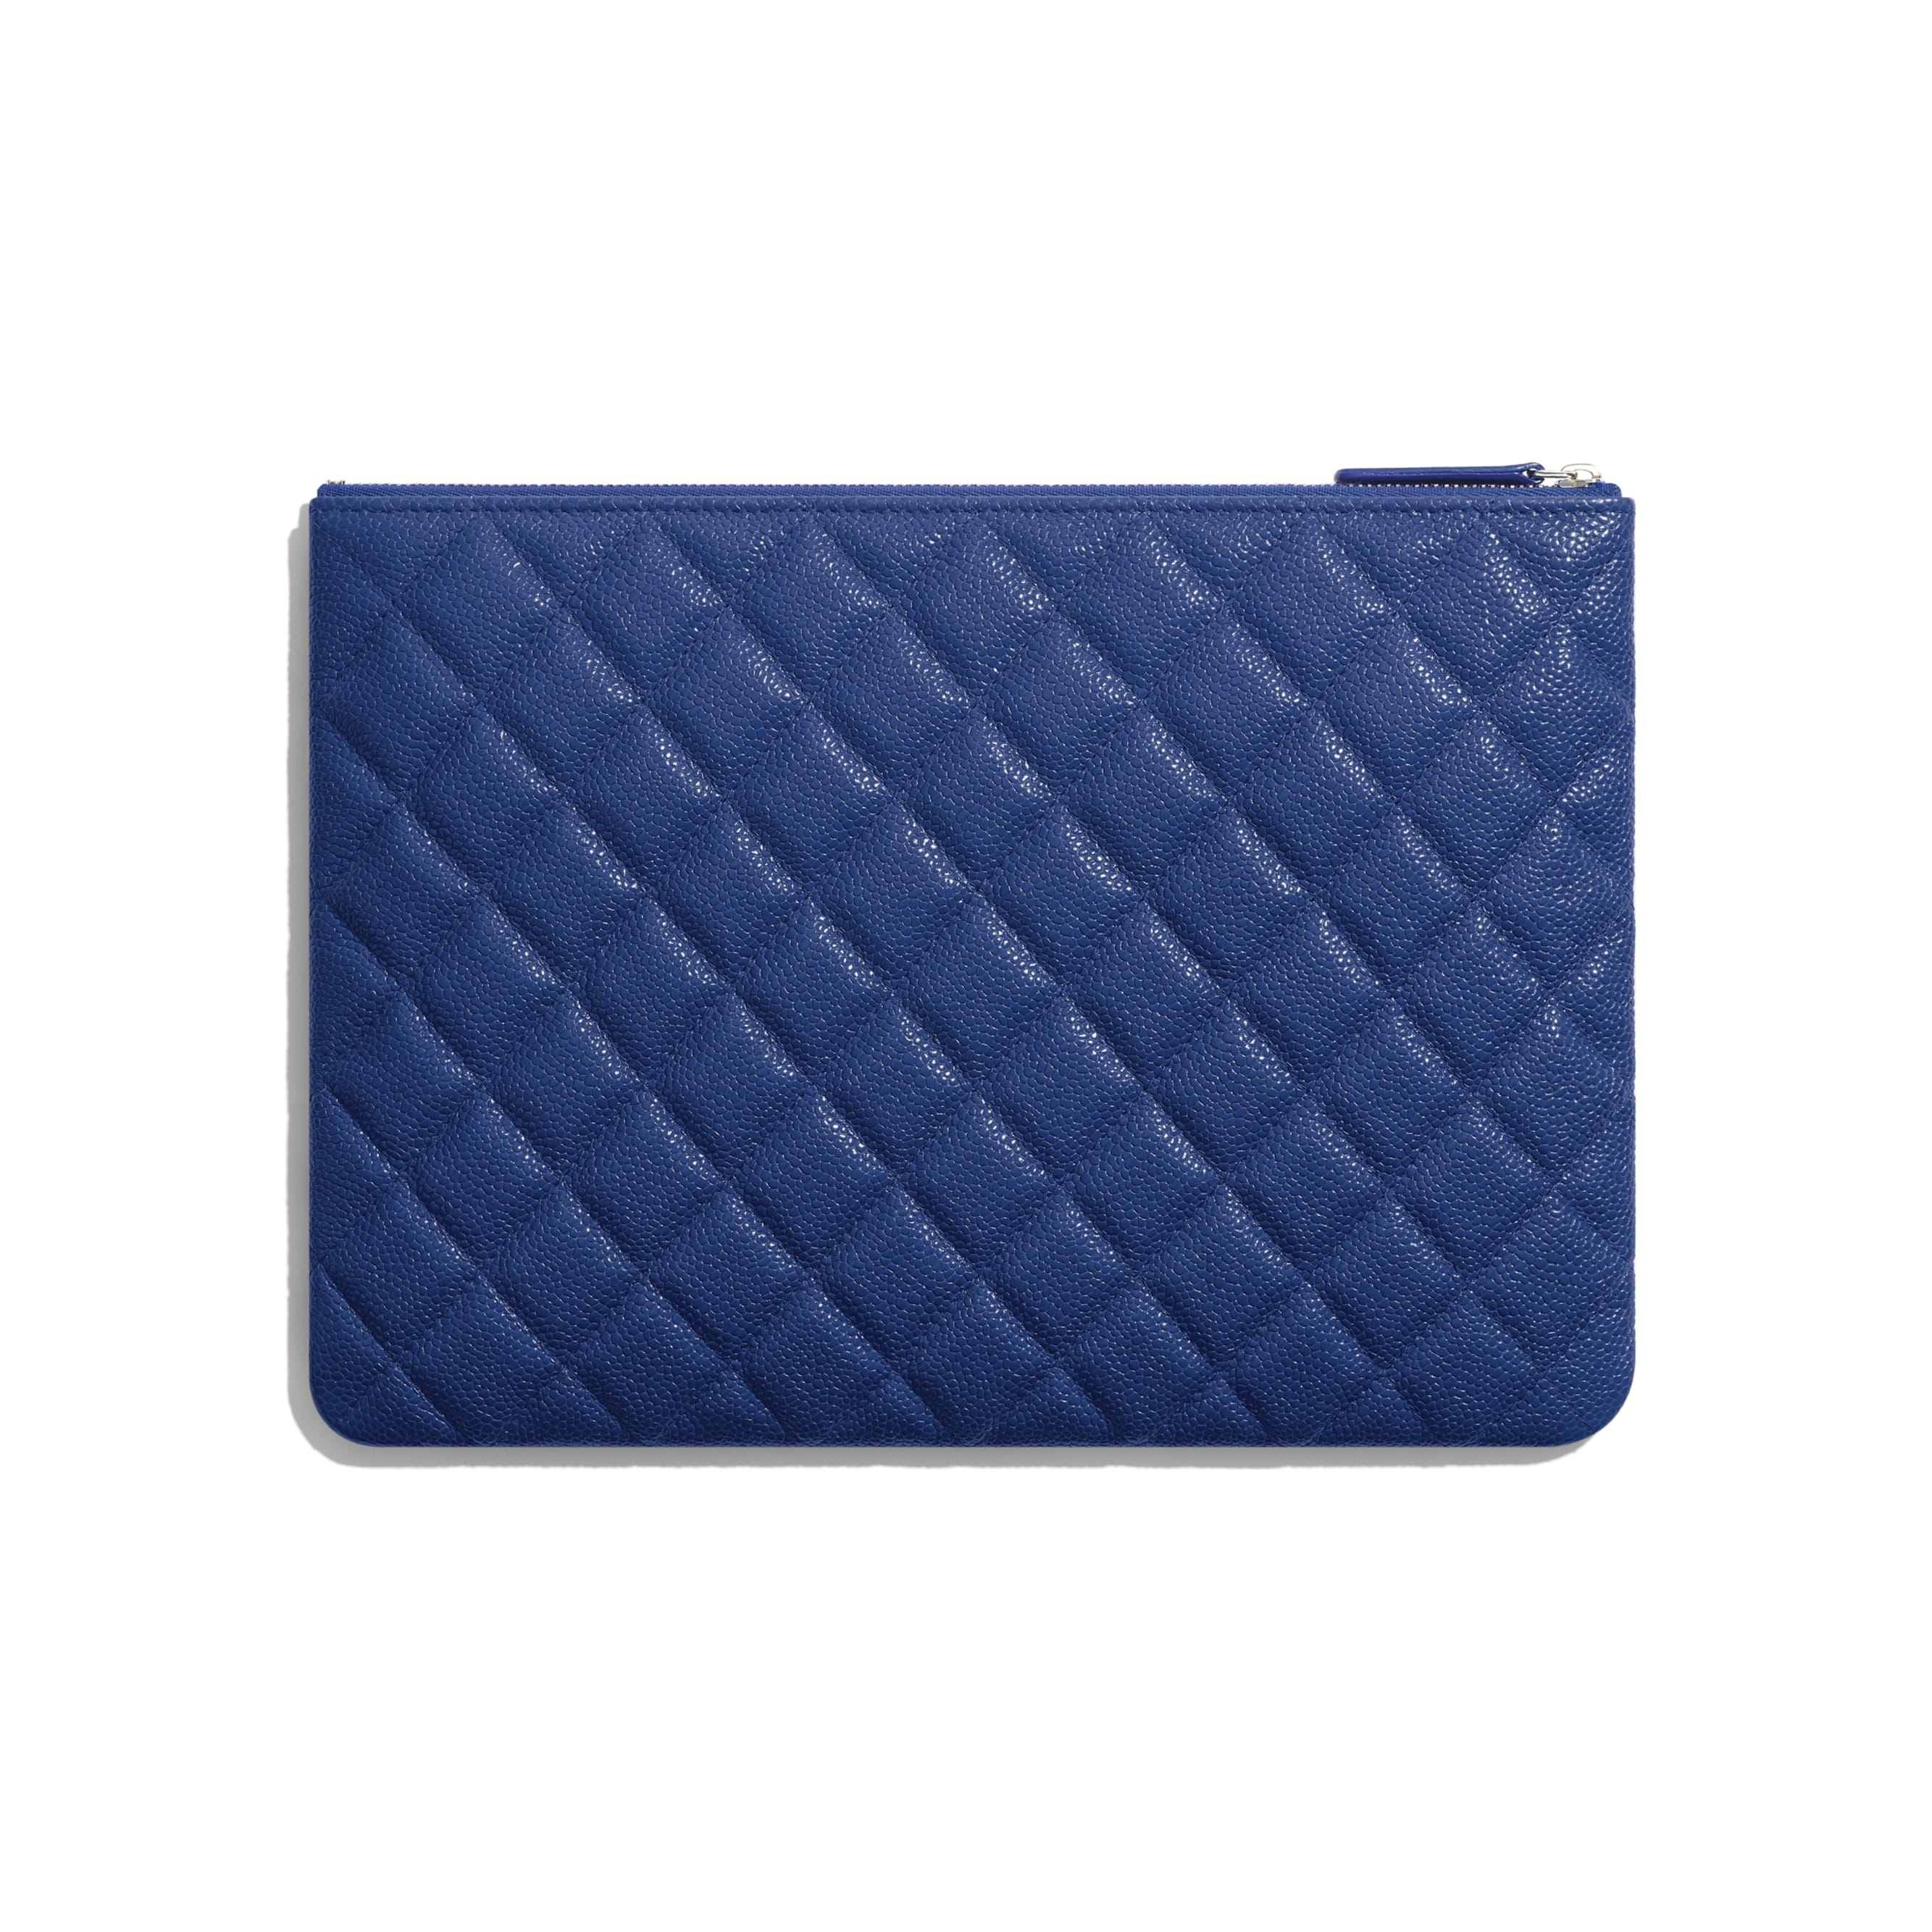 Pouch - Dark Blue - Grained Calfskin & Lacquered Metal - Alternative view - see standard sized version